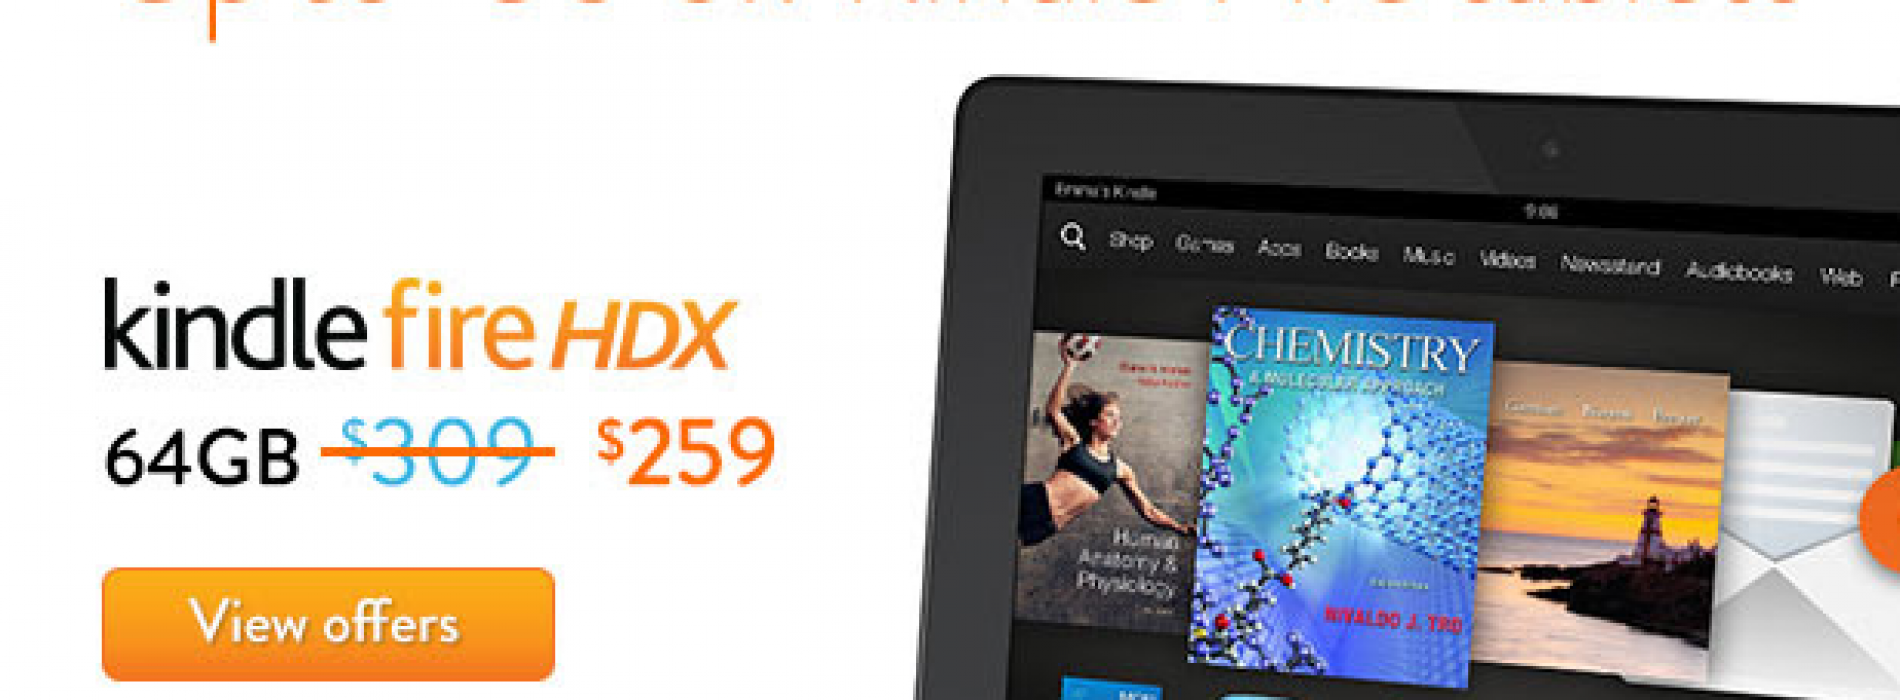 DEALS & STEALS: Amazon offering up to $50 off Kindle Fire tablets